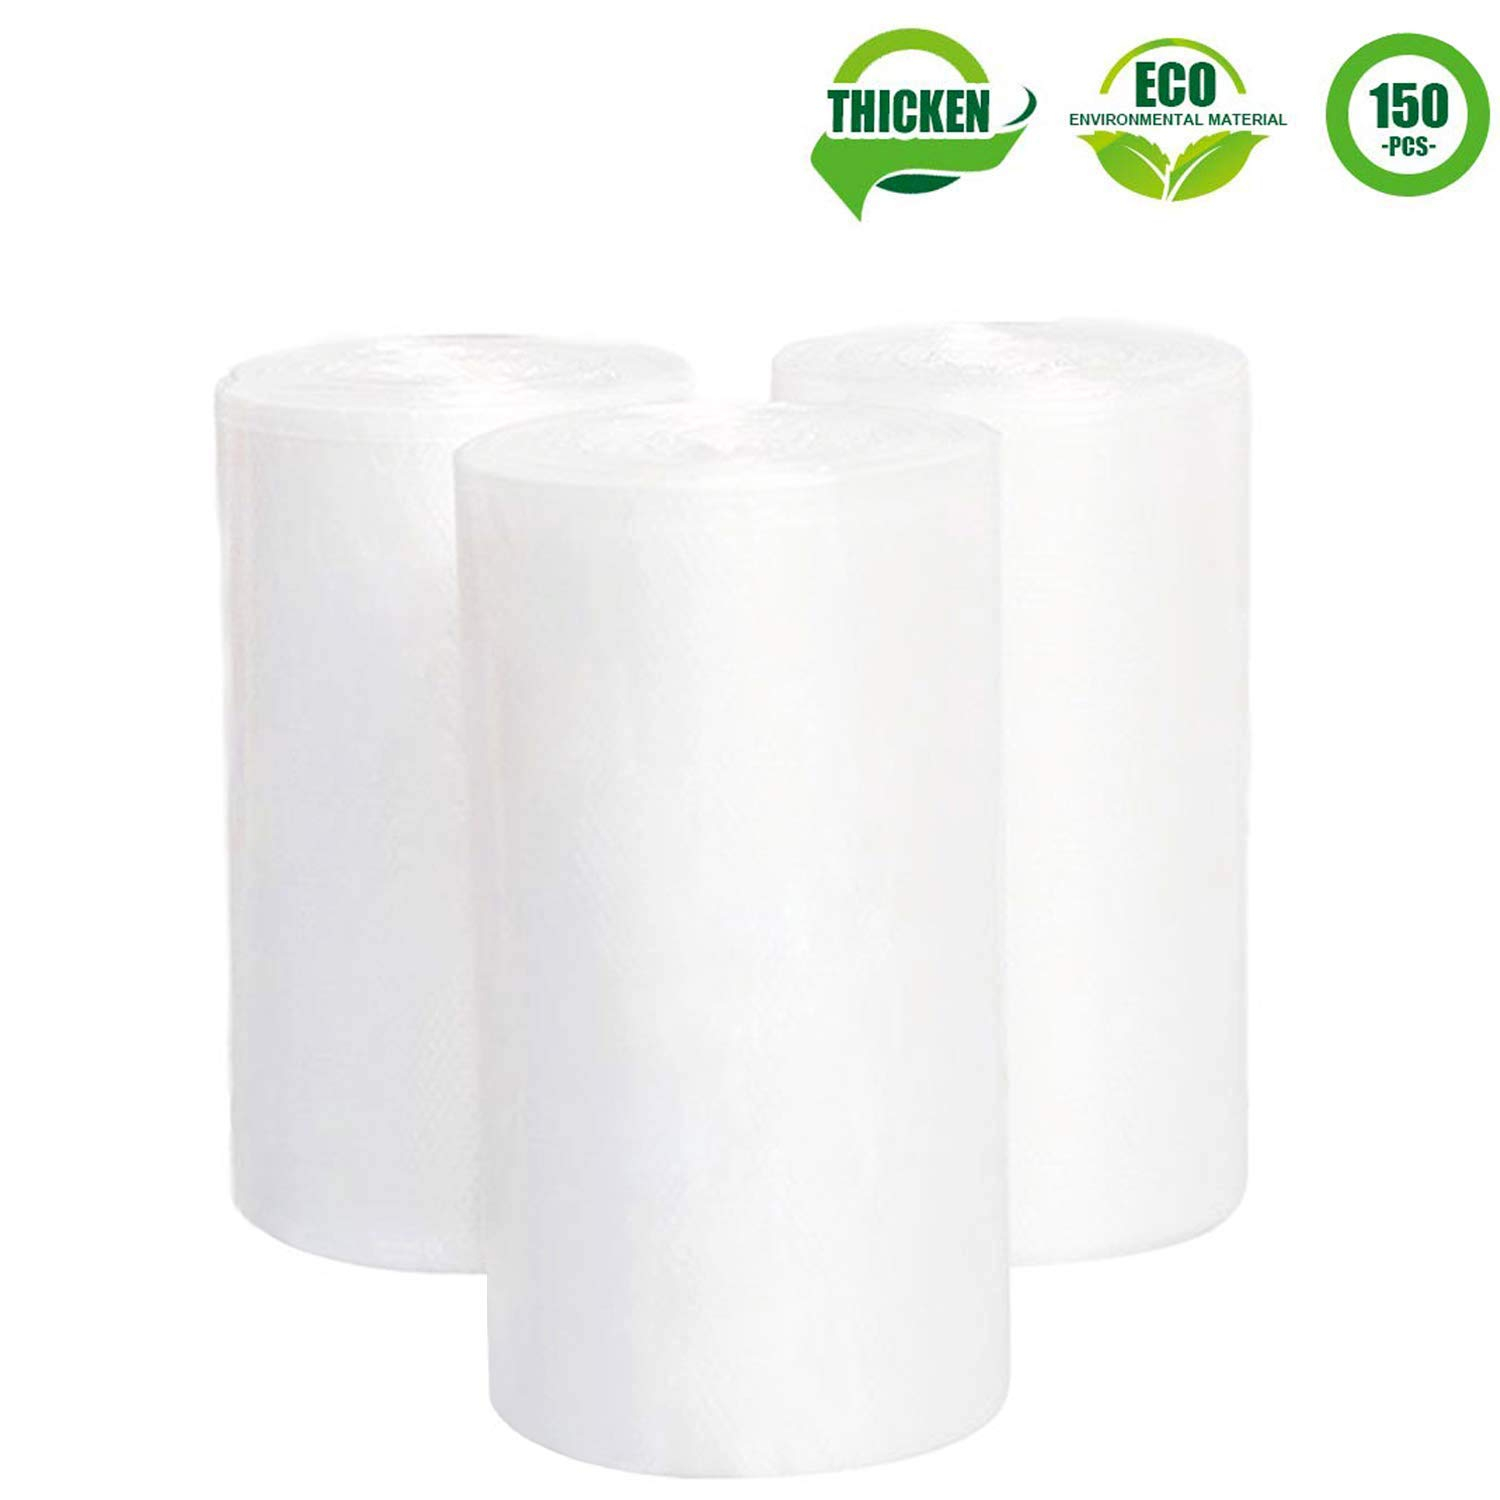 4 Gallon Clear Trash Bgas, Aijoso Small Trash Bags Bathroom Garbage Bags Wastebasket Can Liners for Bathroom, Kitchen, Office 15 Liter Trash Can Liners, 150 Counts